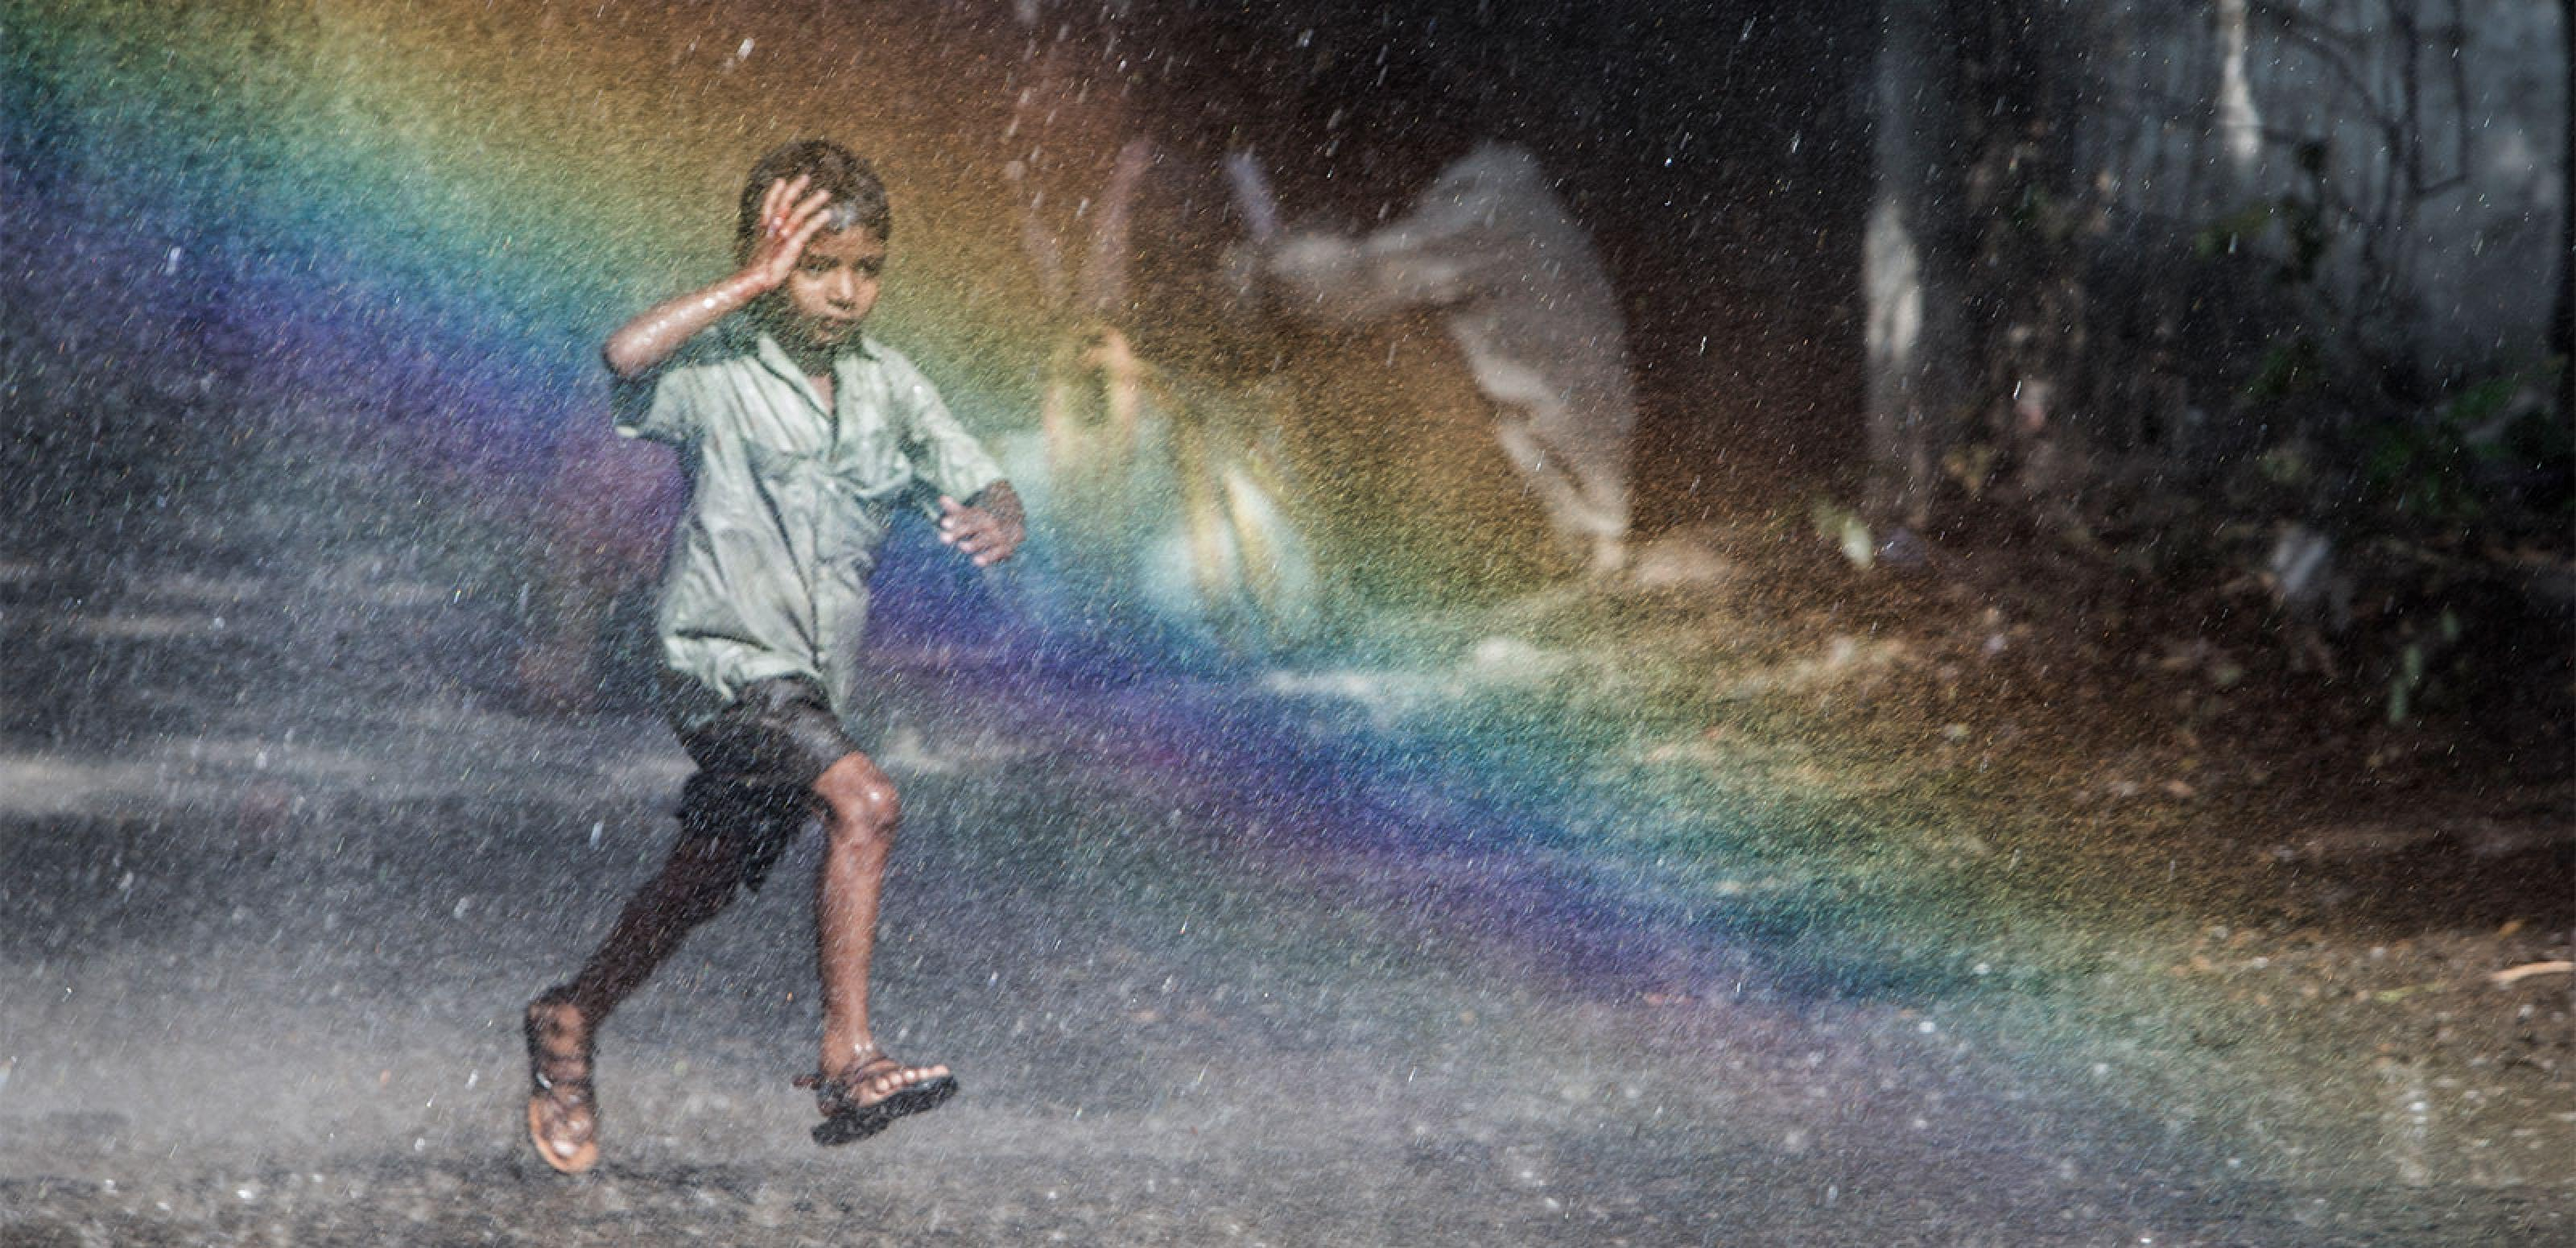 A young Indian boy runs along a street in the rain through a rainbow.